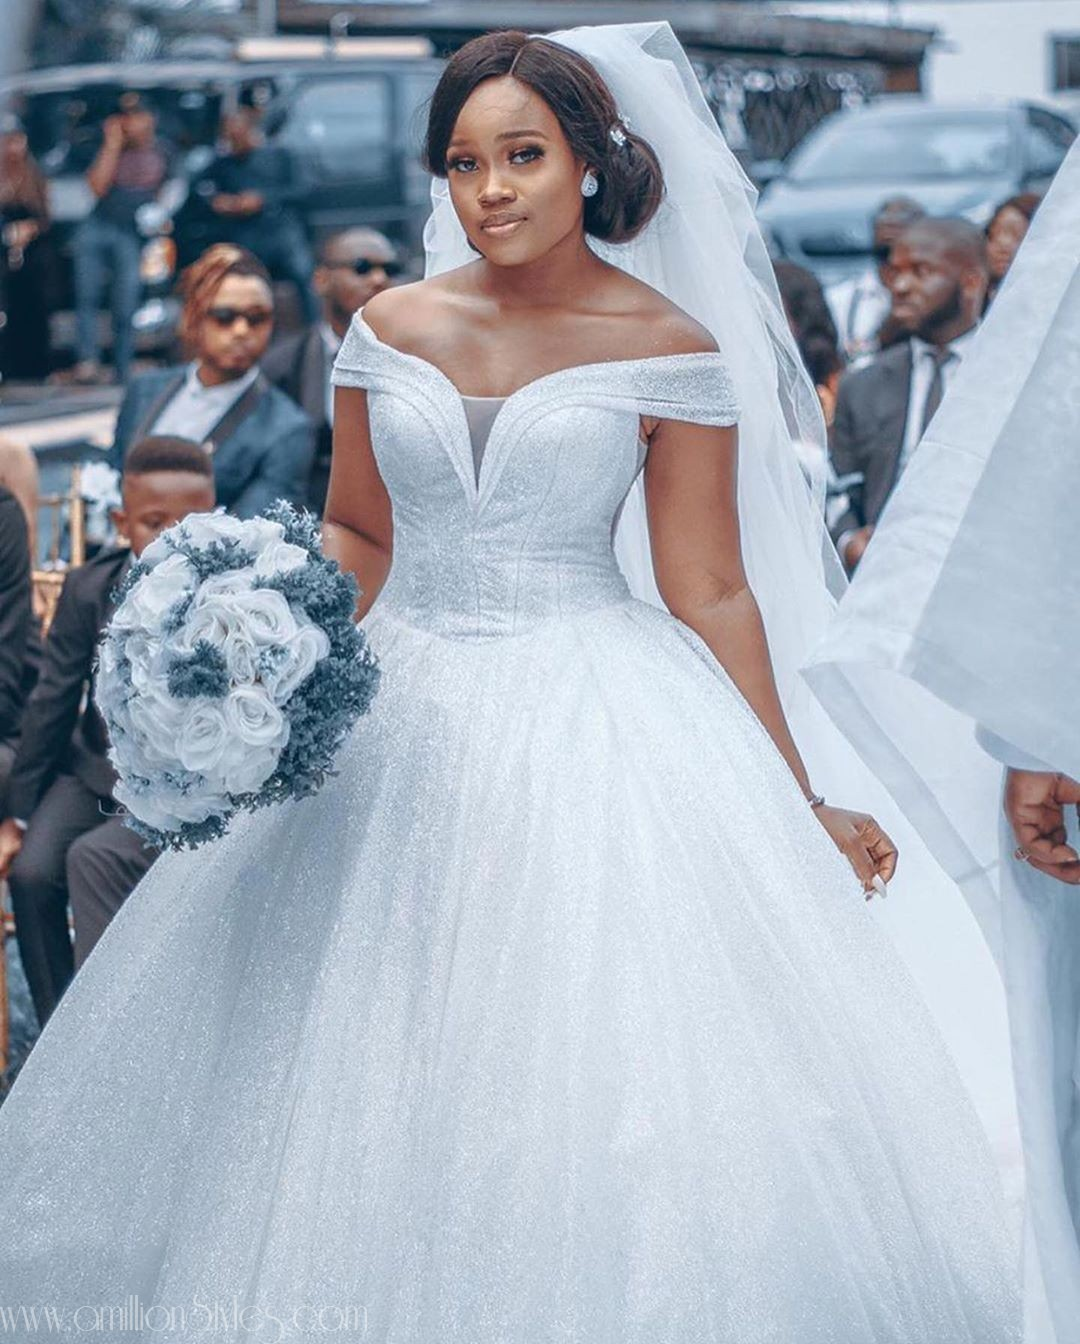 These Sumptuous Wedding Gowns Are For July Brides